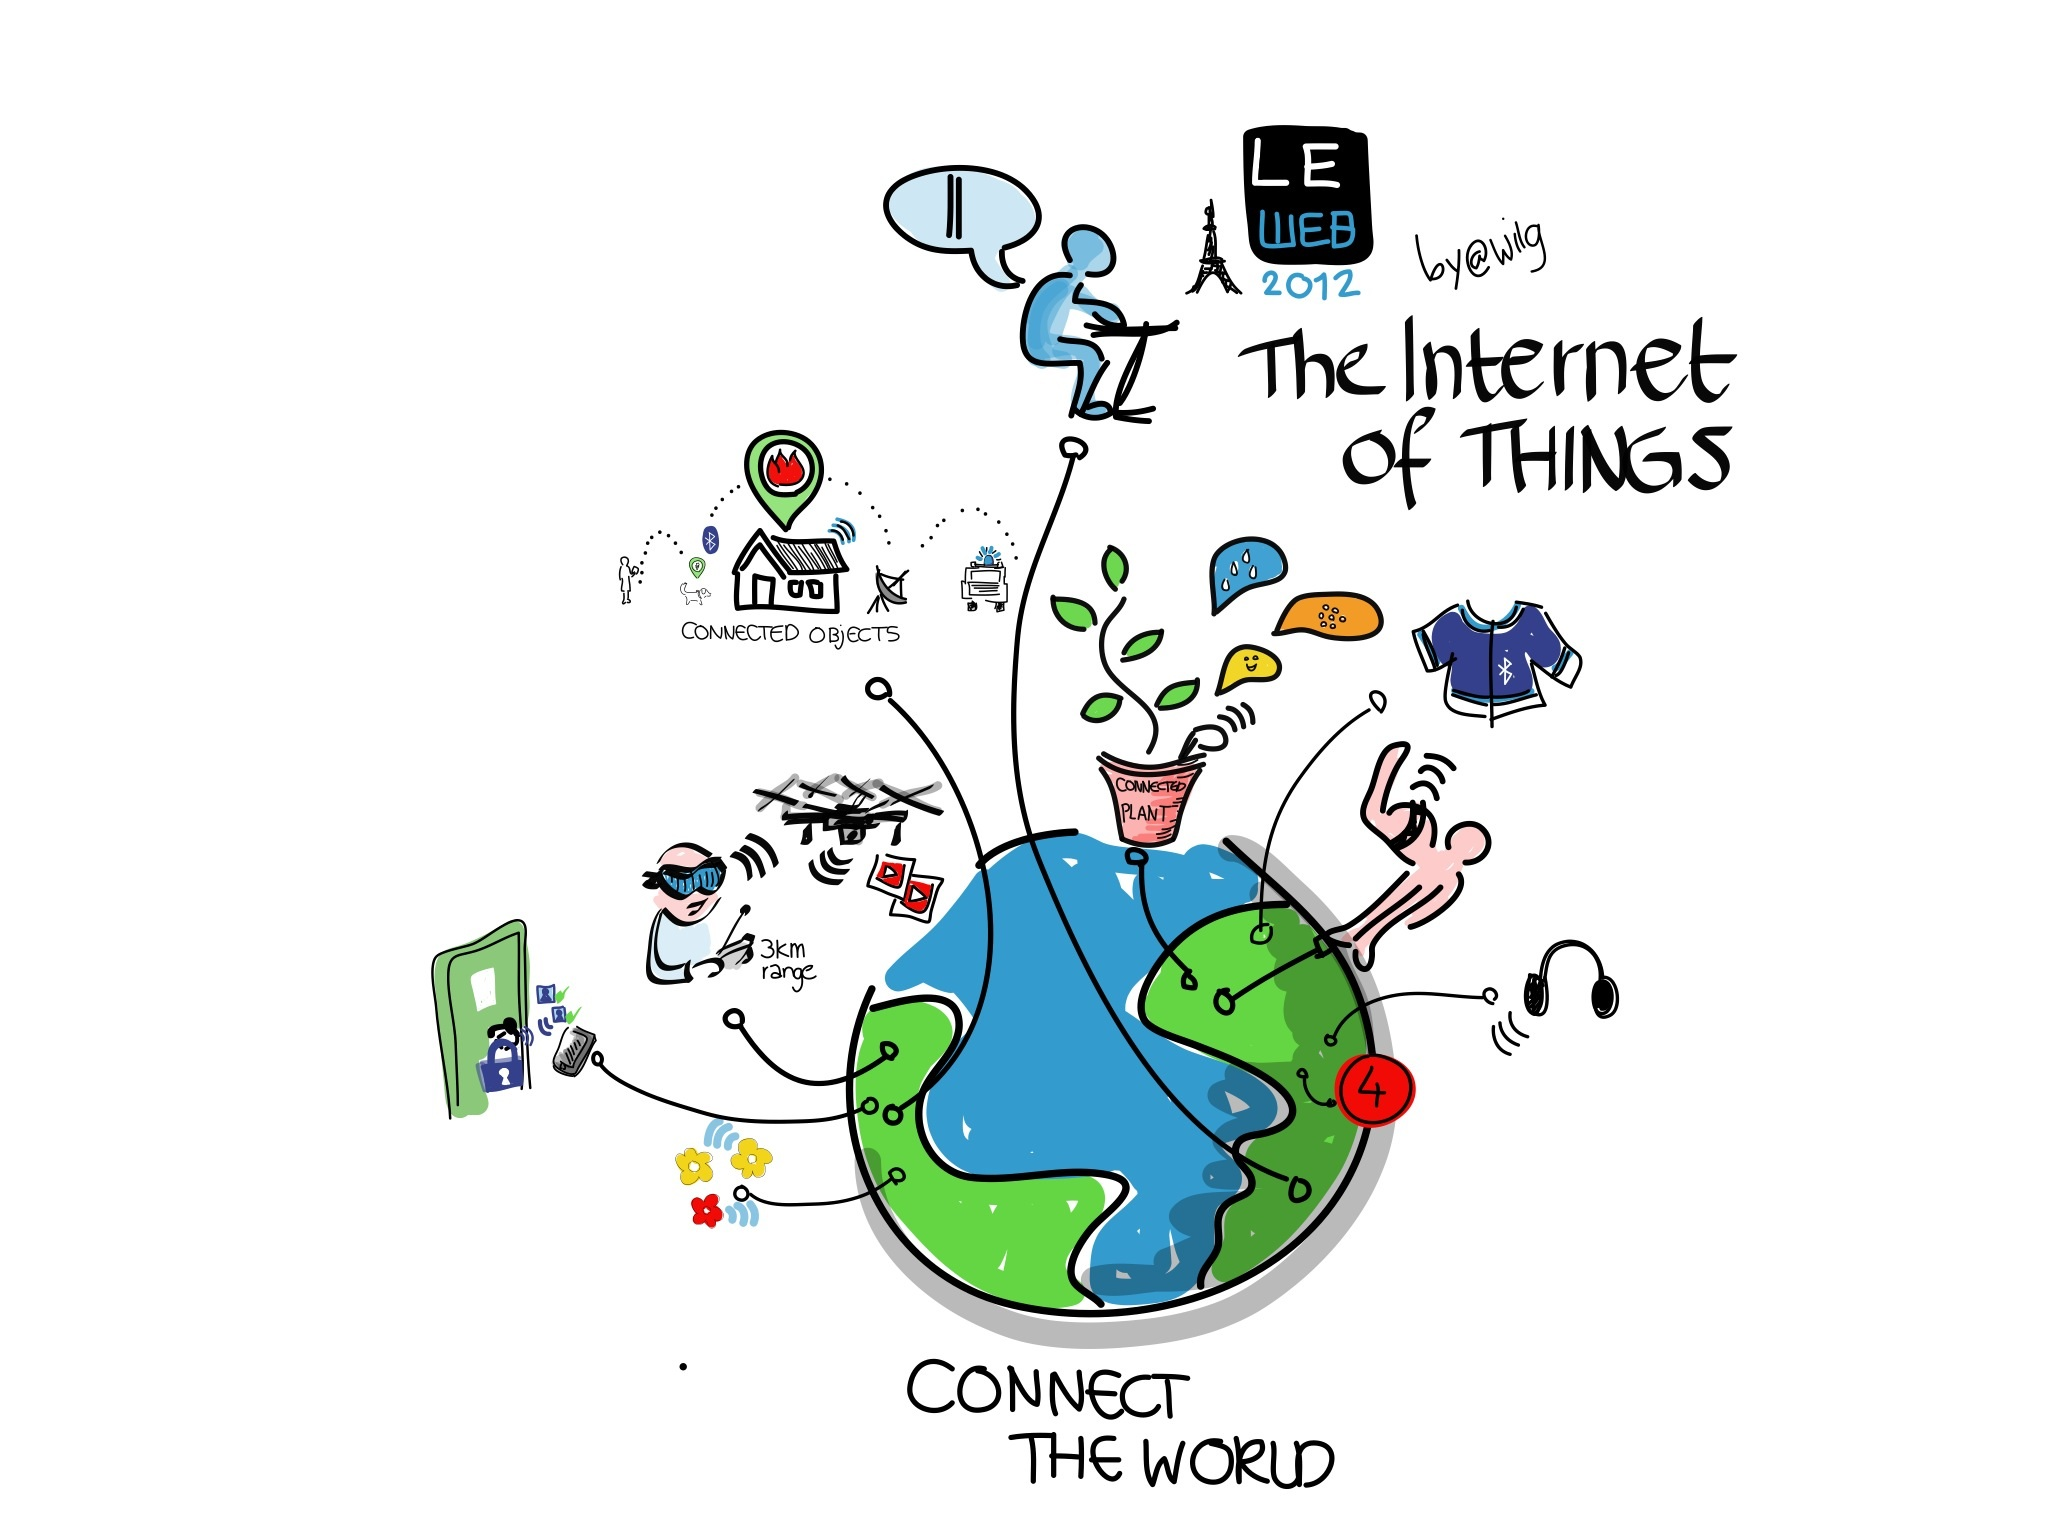 Internet_of_things_signed_by_the_author.jpg